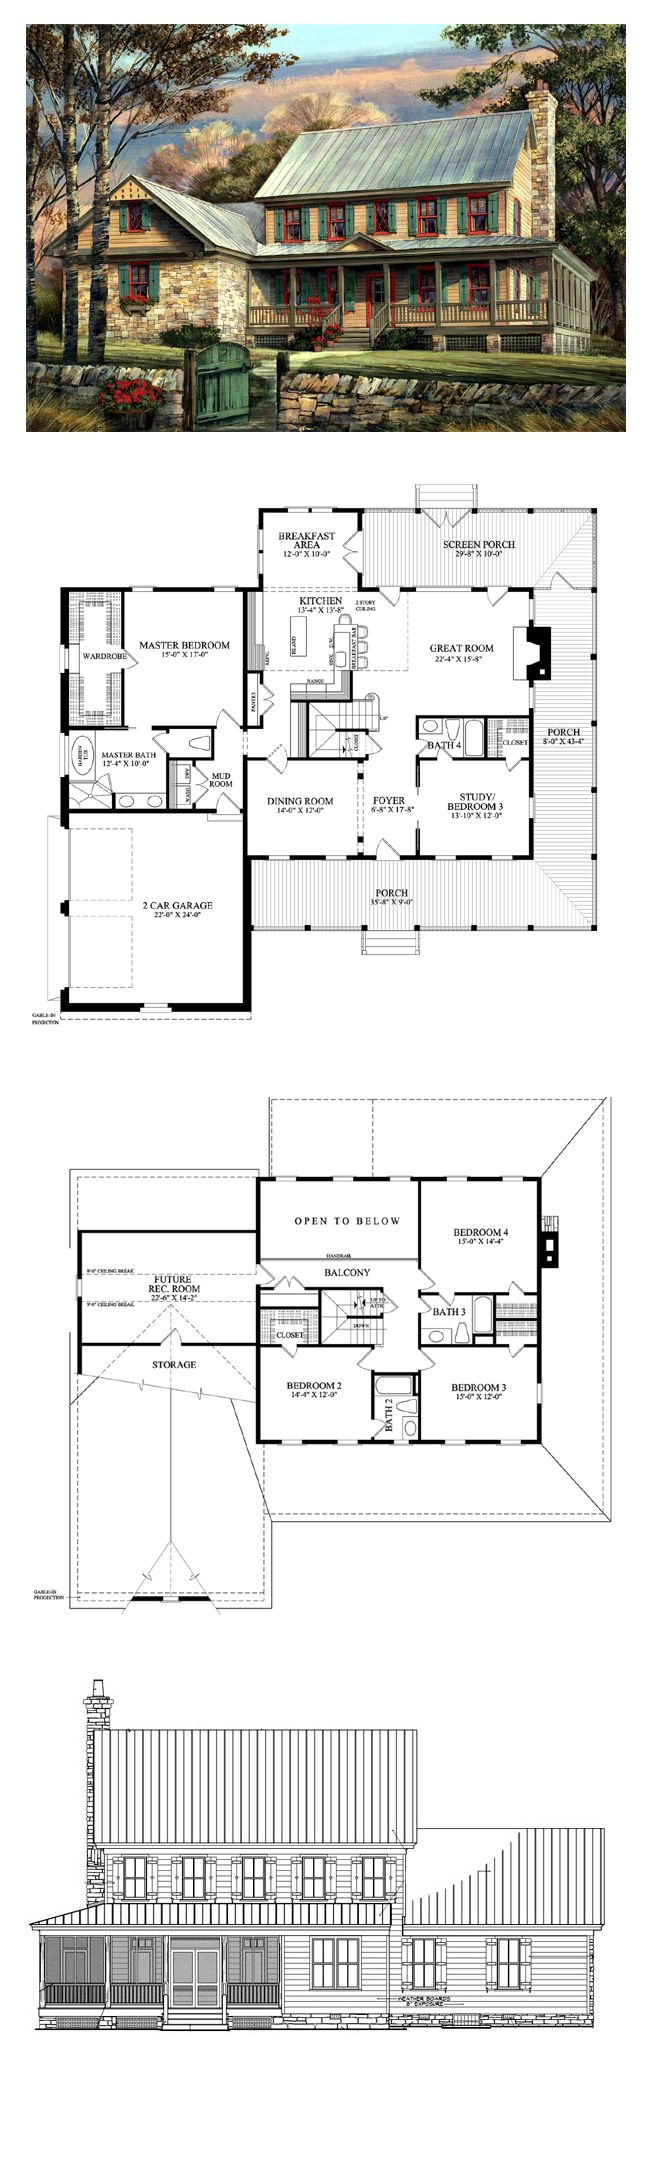 Häuser grundriss kühlen hauspläne kolonialhaus pläne badezimmer houseplan houseplans farm house style homes floor plans 4 bedroom farmhouse house